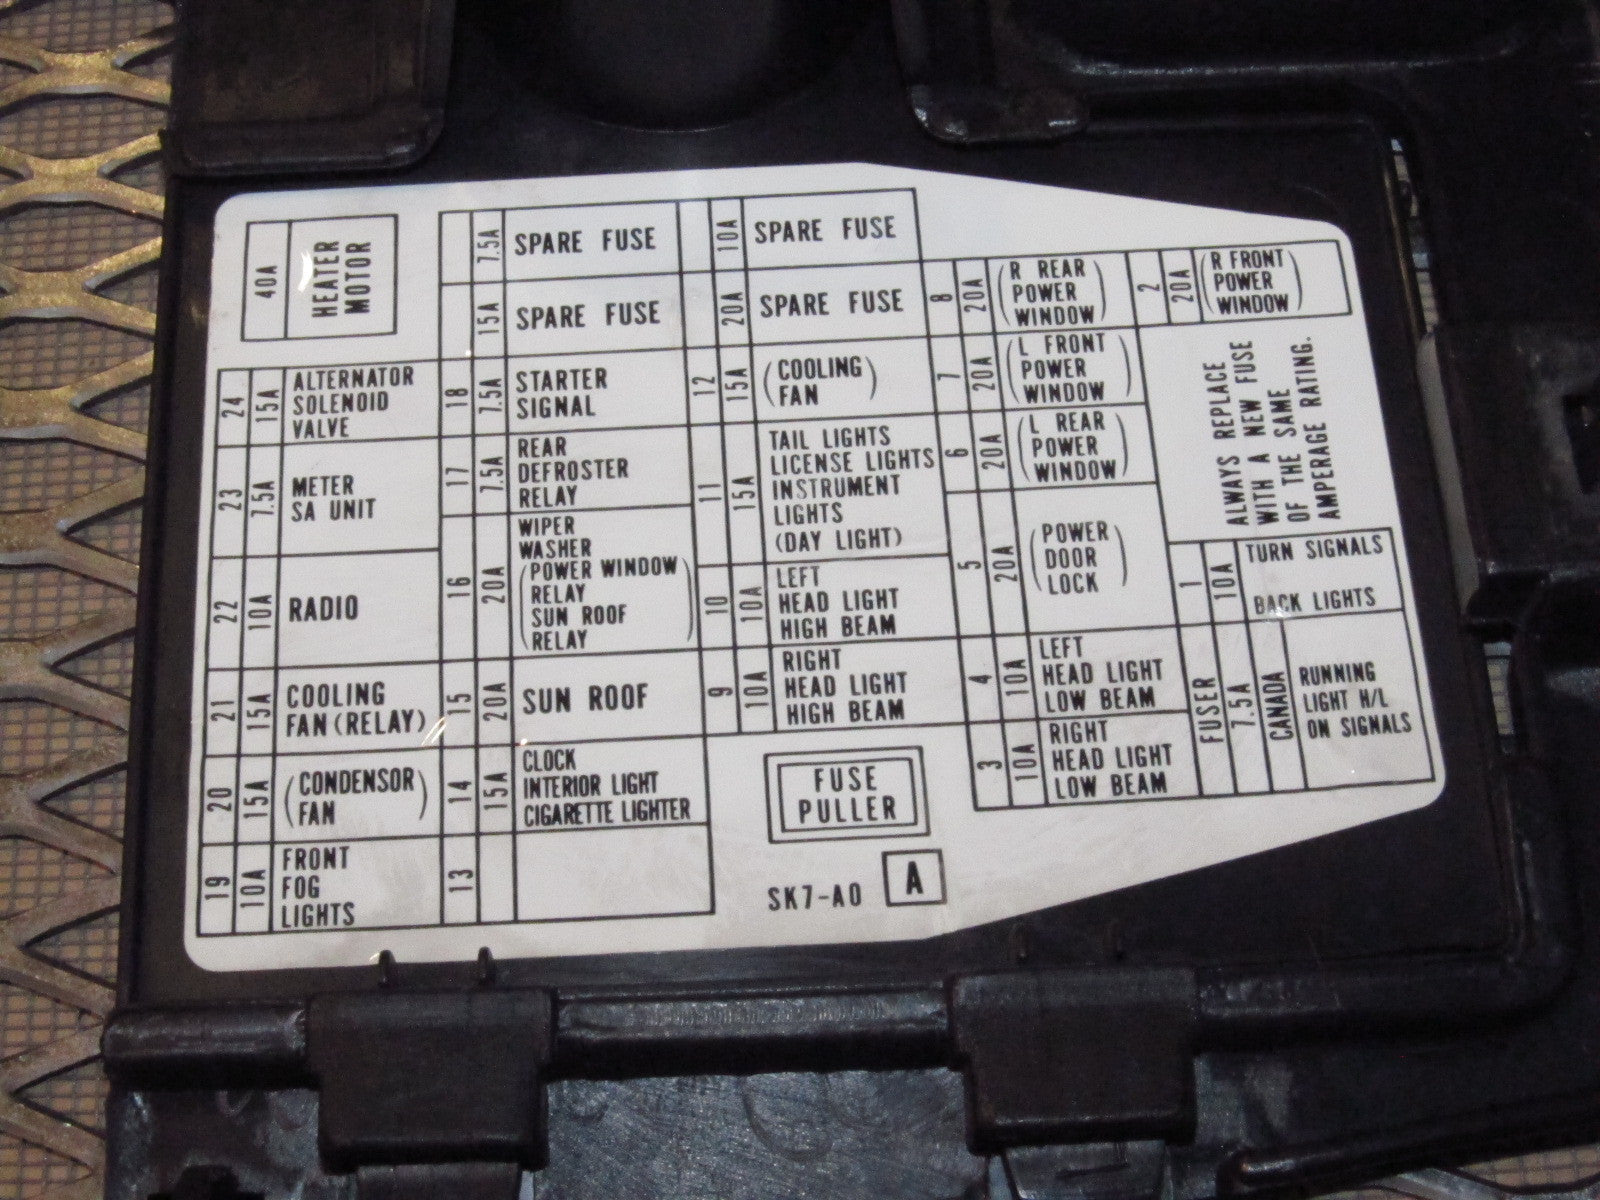 90 300zx Fuse Box Layout Manual Of Wiring Diagram 1986 Nissan 93 Integra About Rh Medijagmbbs Com